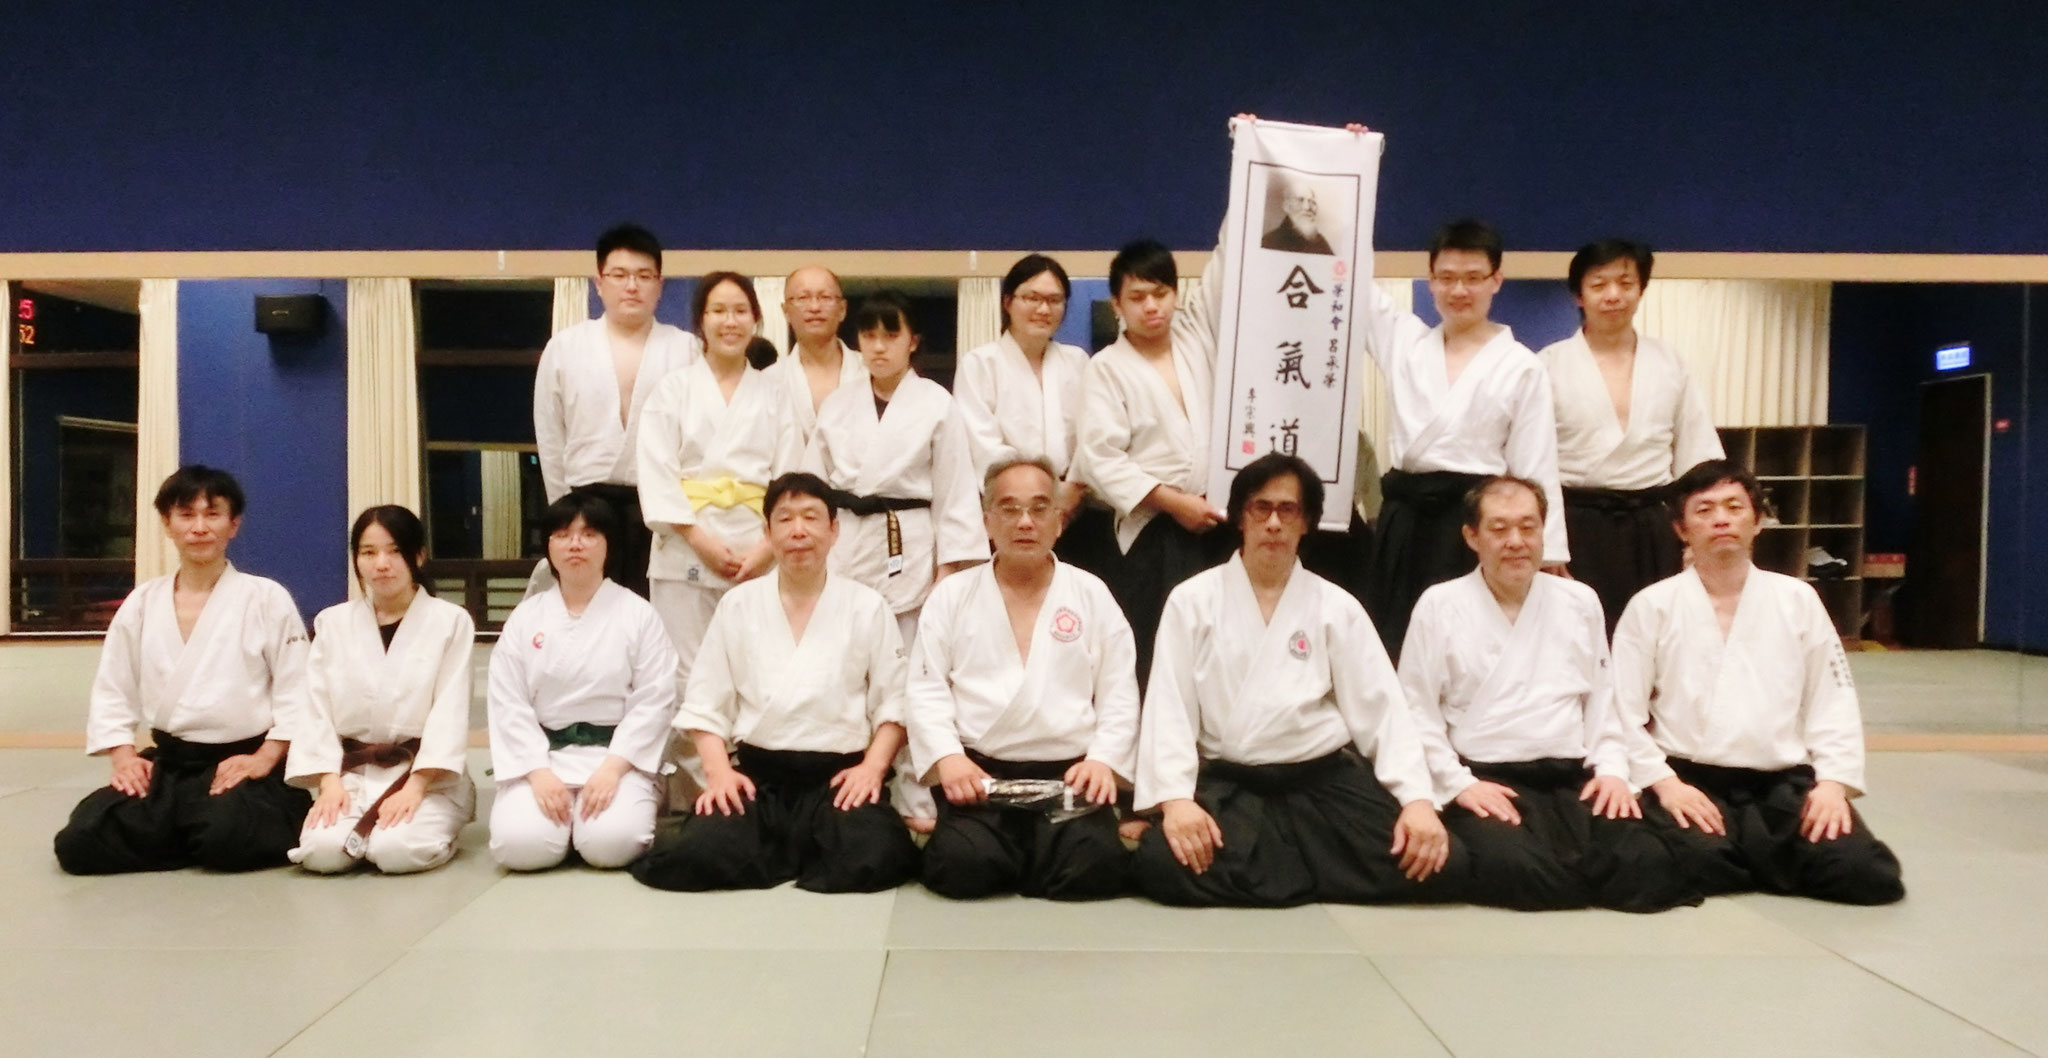 With the members of  Lu Sensei